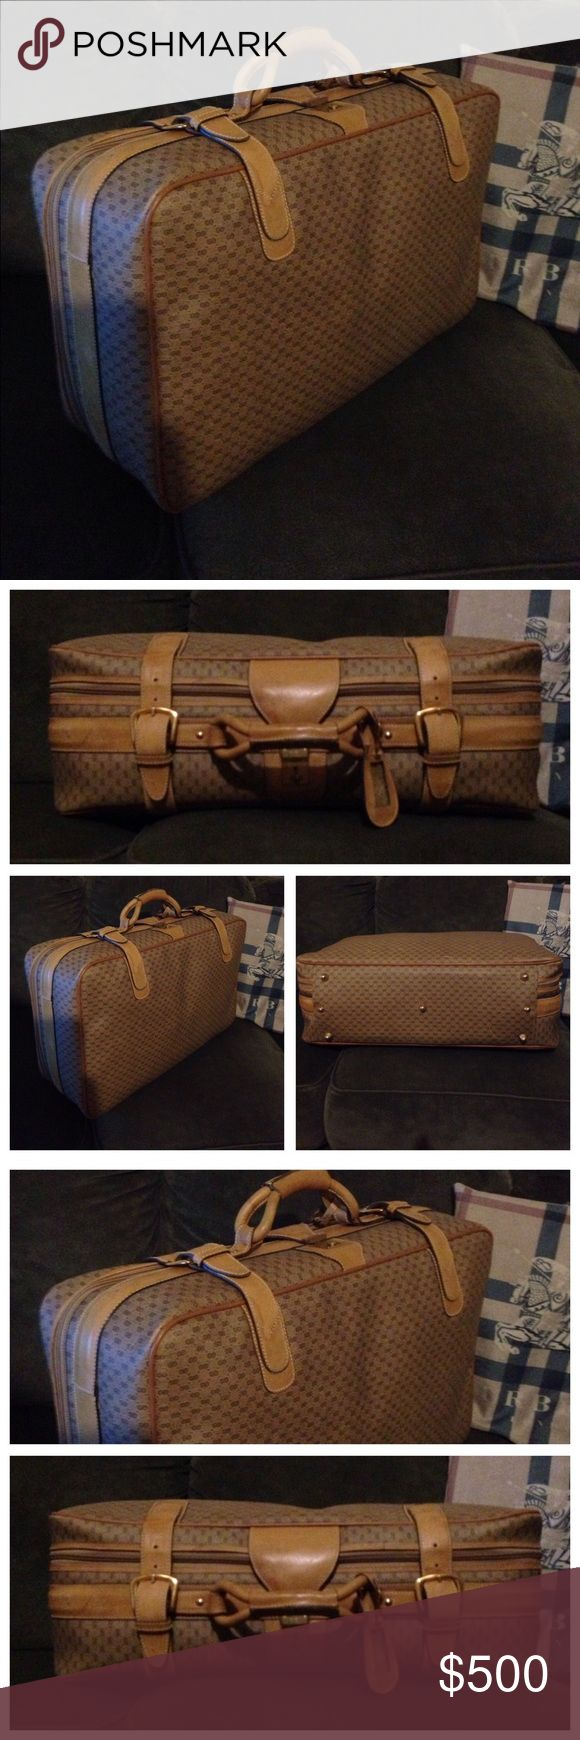 ⭐️Rare Gucci GG Monogram Supreme Luggage Handbag BEAUTIFUL - IMPRESSIVE Rare Vintage Gucci Supreme Luggage. Very Classy Gucci, carry on size ⭐️ sells avg800+ at others, Mine more Beautiful! ⭐️ REASONABLE Offers from Serious Buyers only ⭐️  DON'T pass it by, NO longer made Ultra rare beautiful Gucci Supreme Monogram!   NO bundle discount. Have to pay SHIP ⭐️Gucci Chanel Burberry Dior Coach Halston more!  STUNNING GUCCI SUPREME well worth a nice Offer! ⭐️ priceless treasure, no longer made…